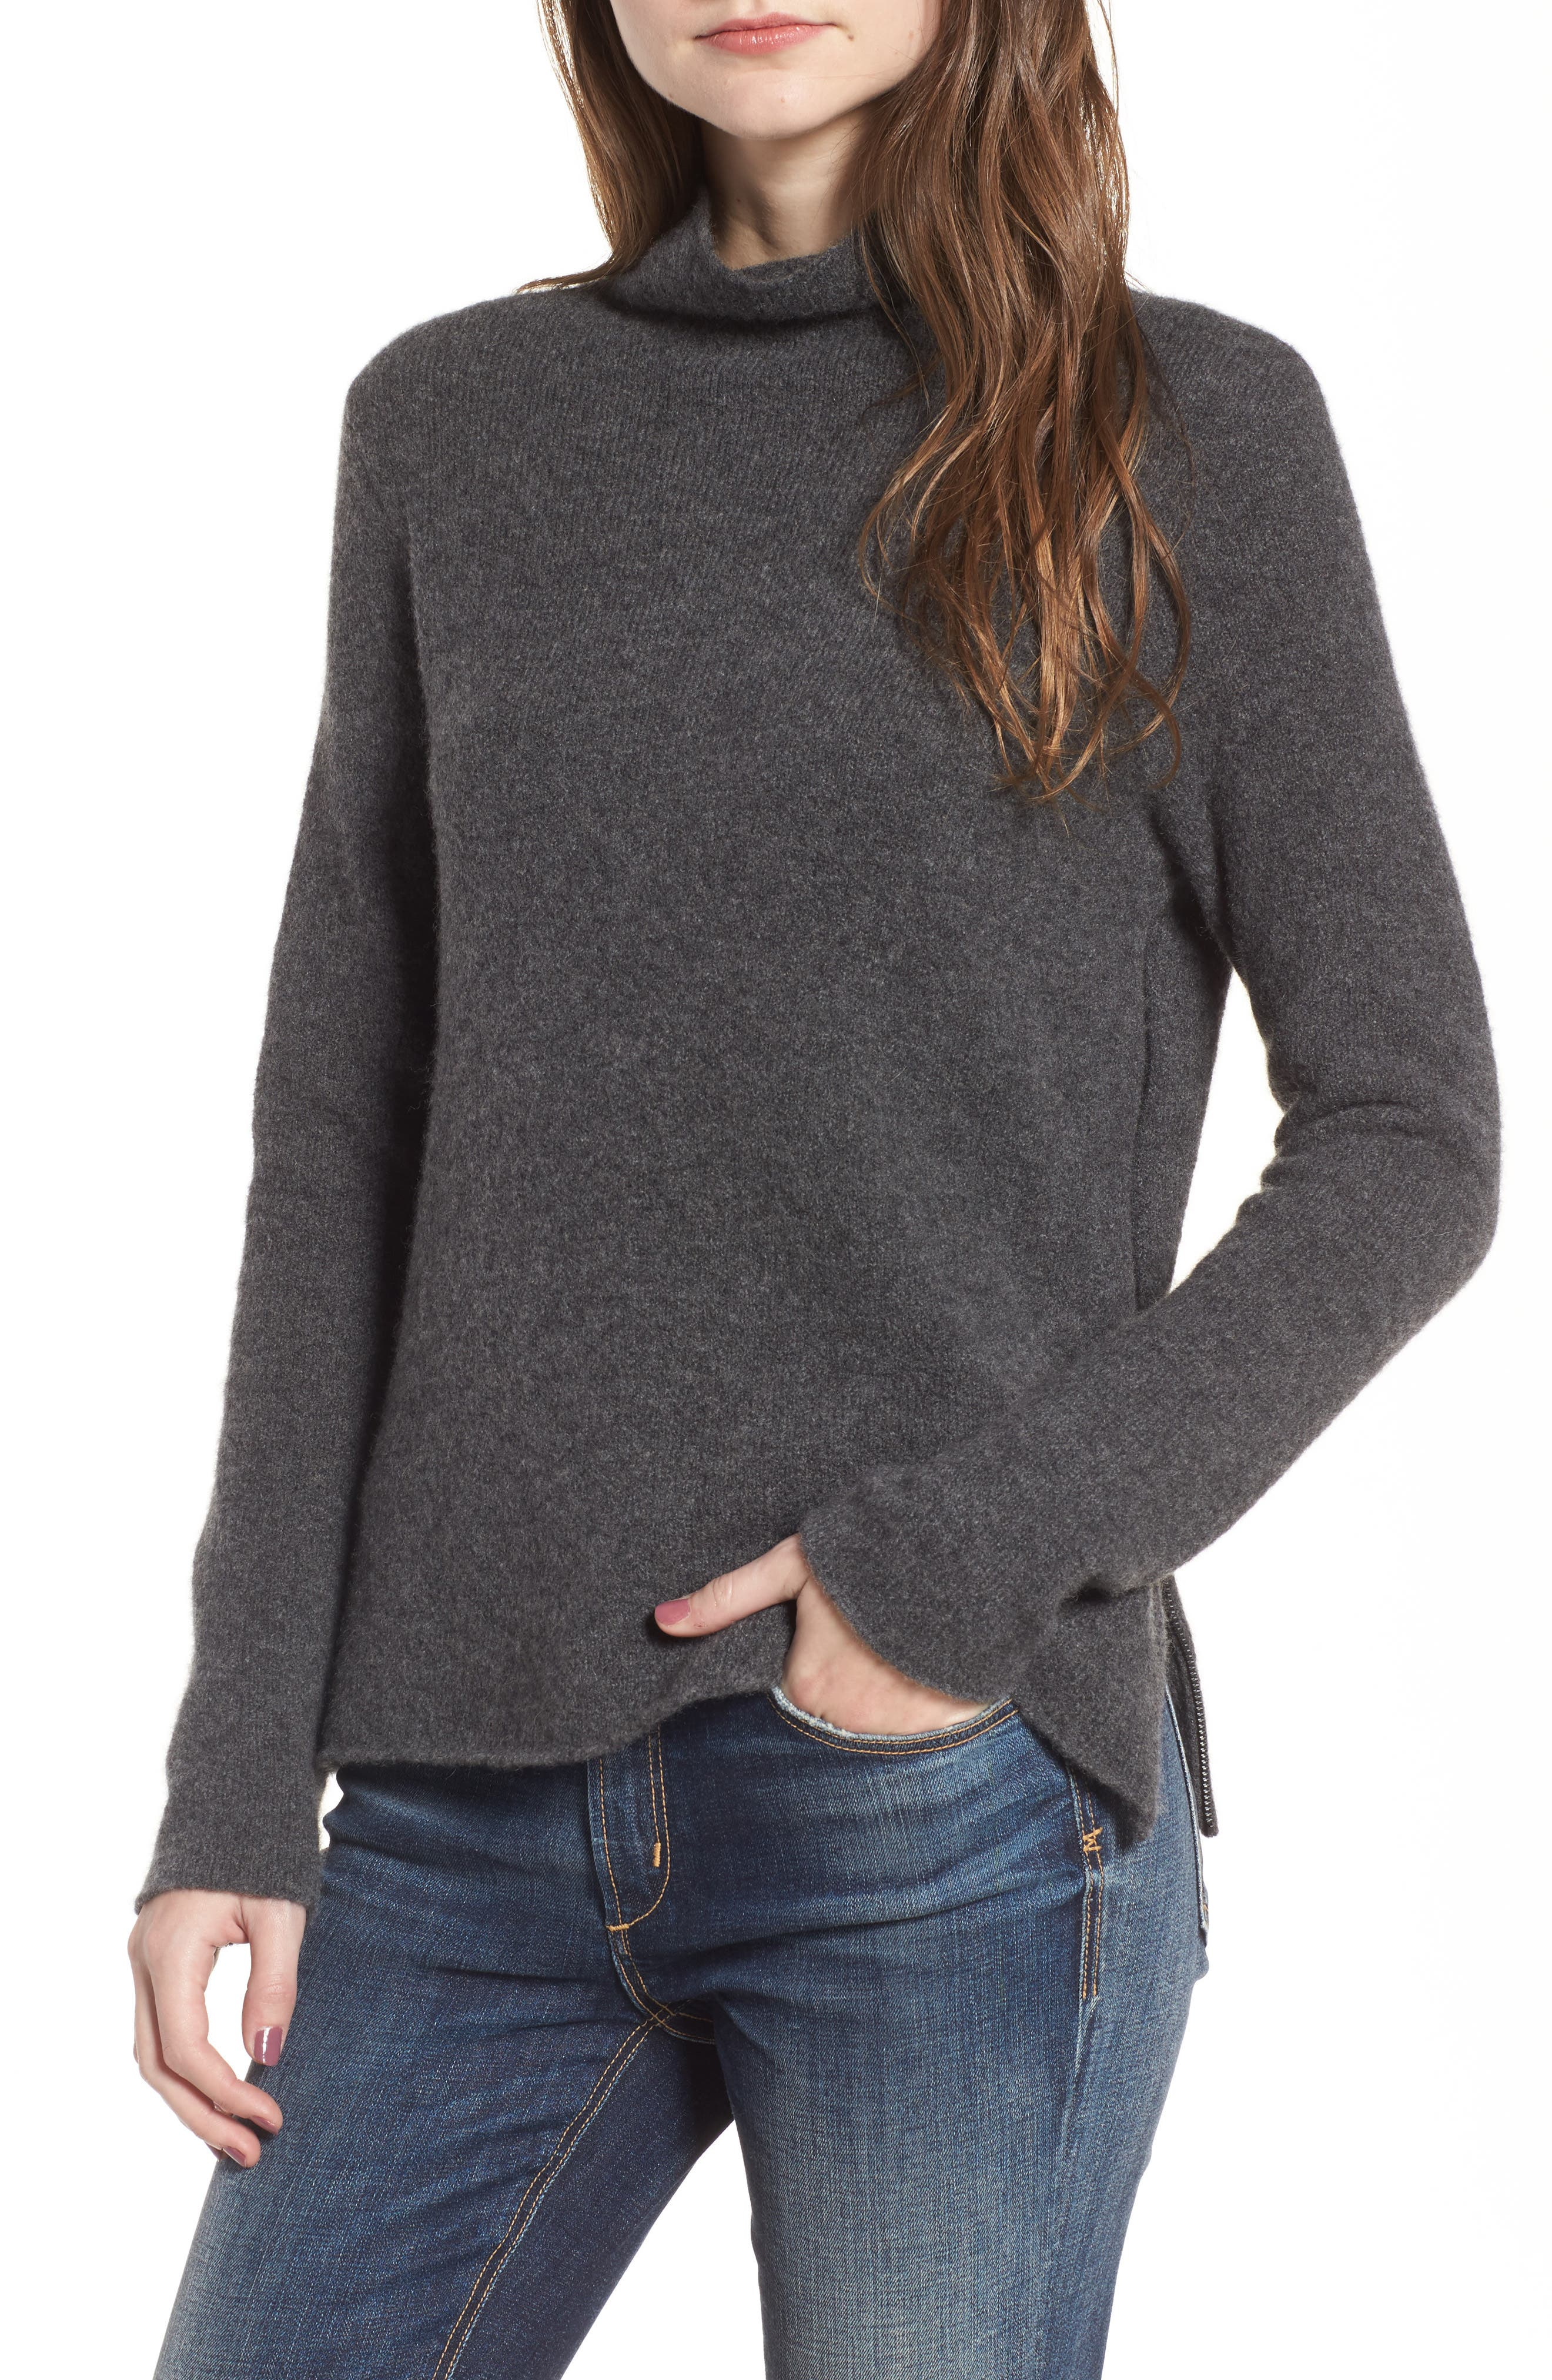 Stretch Cashmere Mock Neck Sweater,                             Main thumbnail 1, color,                             069